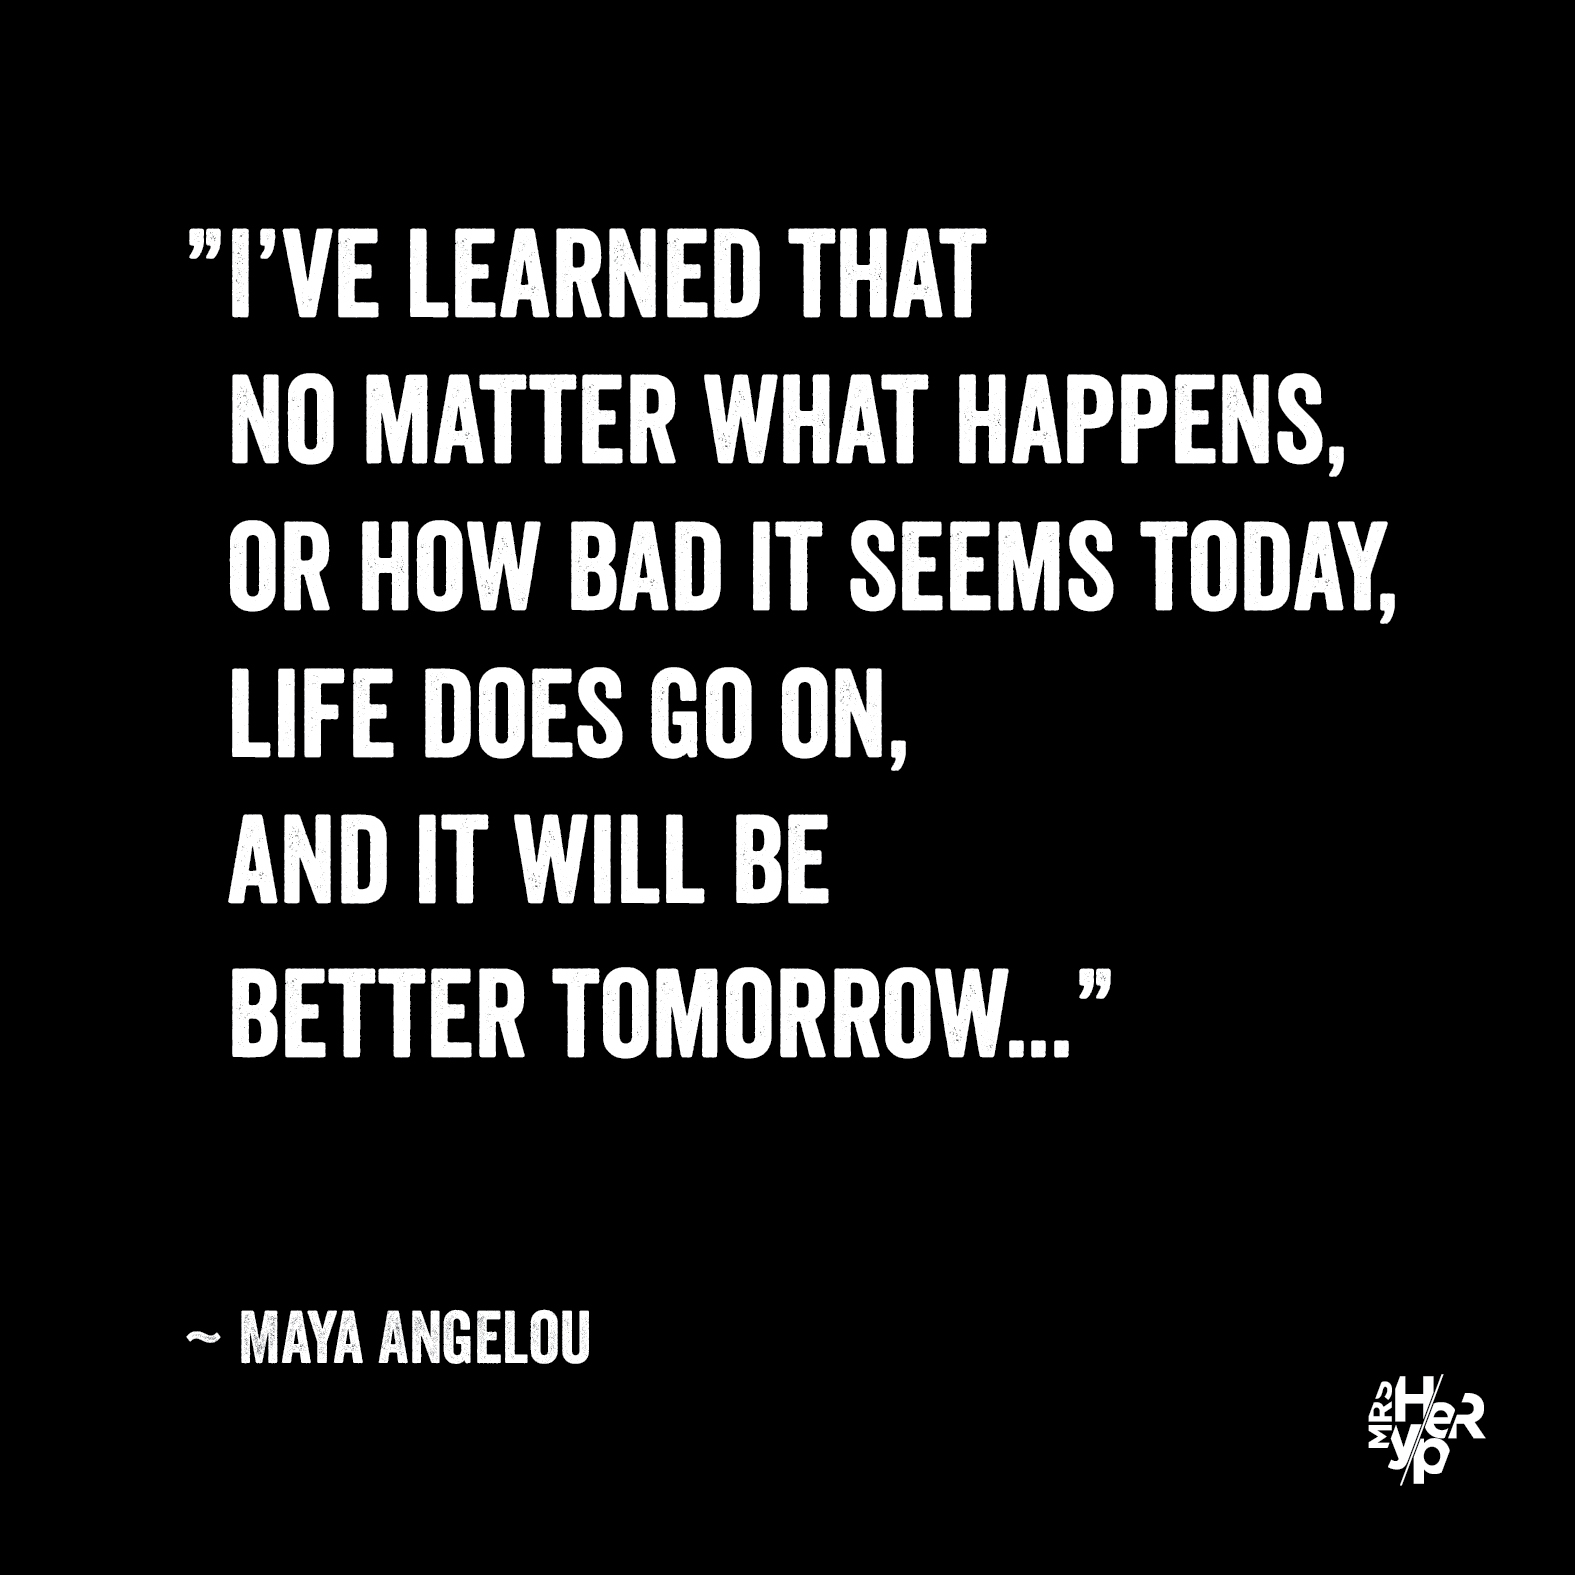 I've learned that no matter what happens